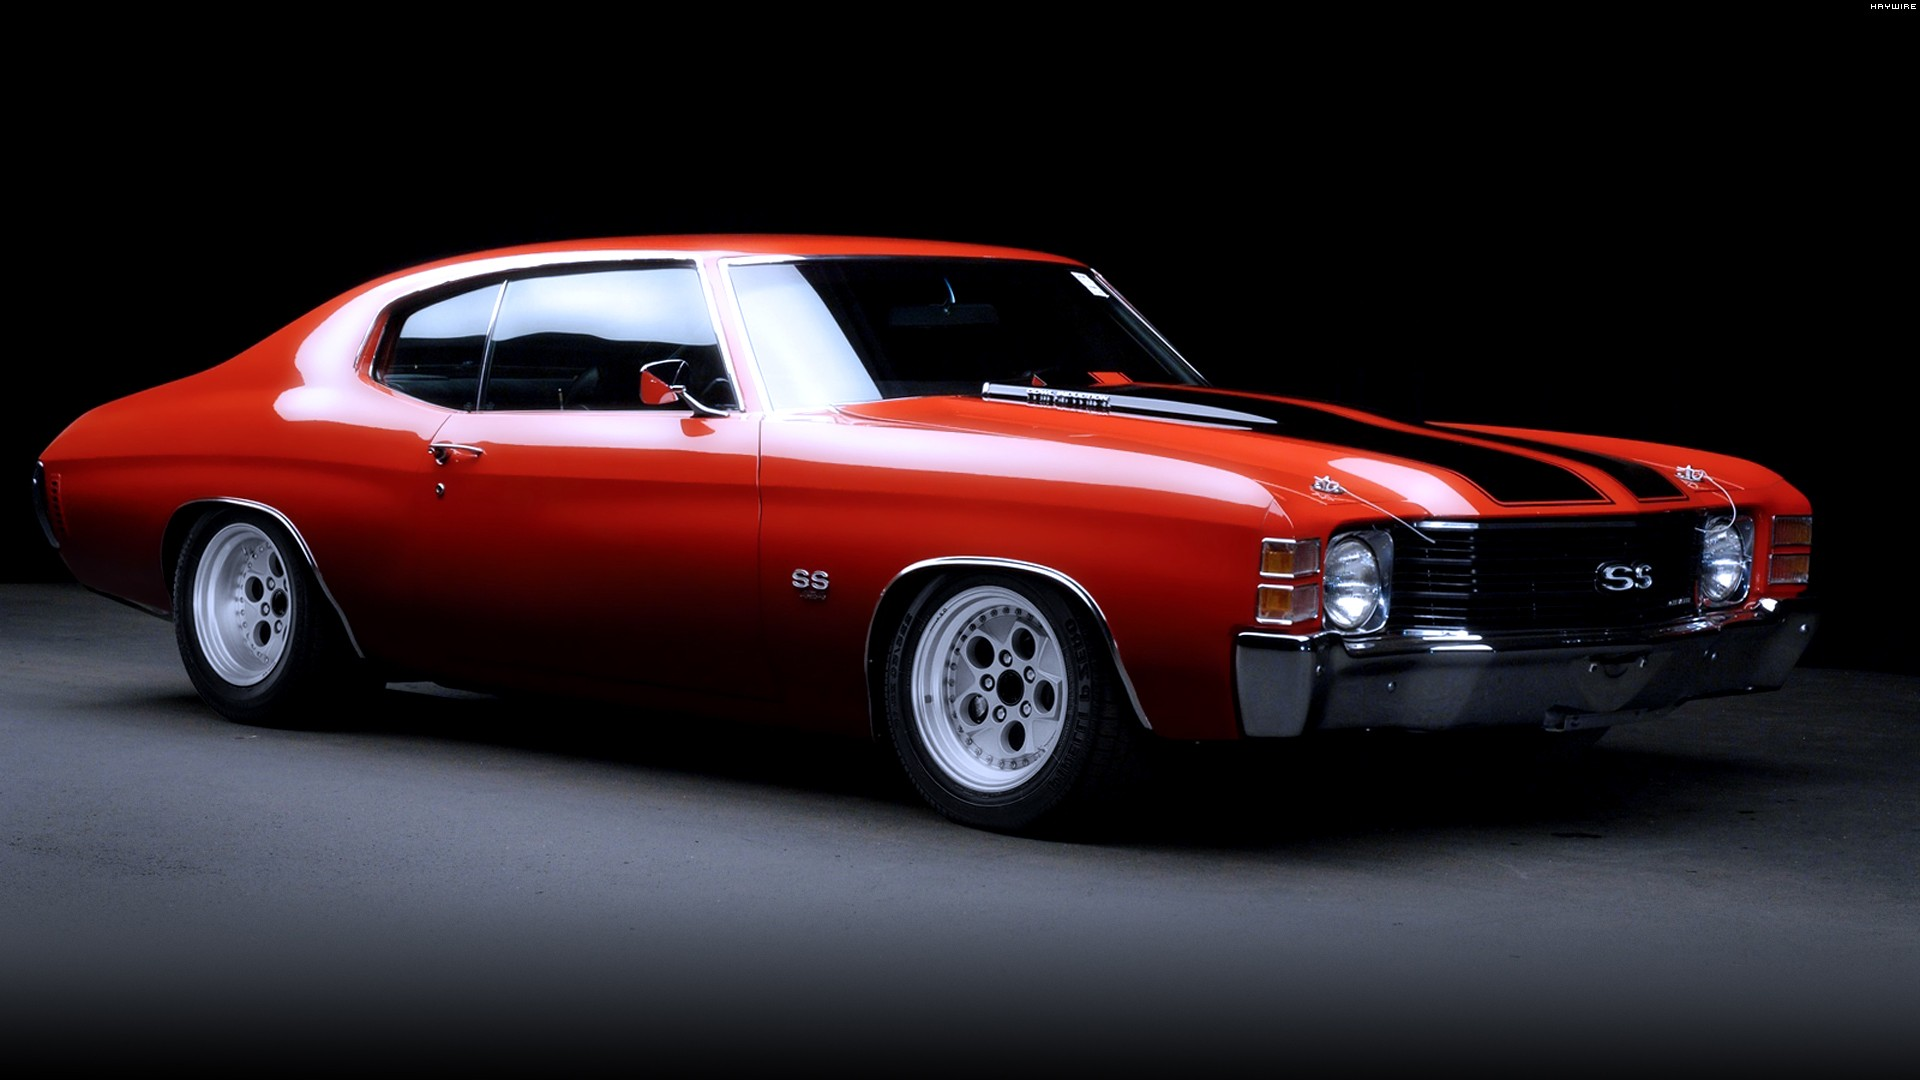 Cars Muscle Wallpaper 1920x1080 Cars Muscle Cars DeviantART 1920x1080